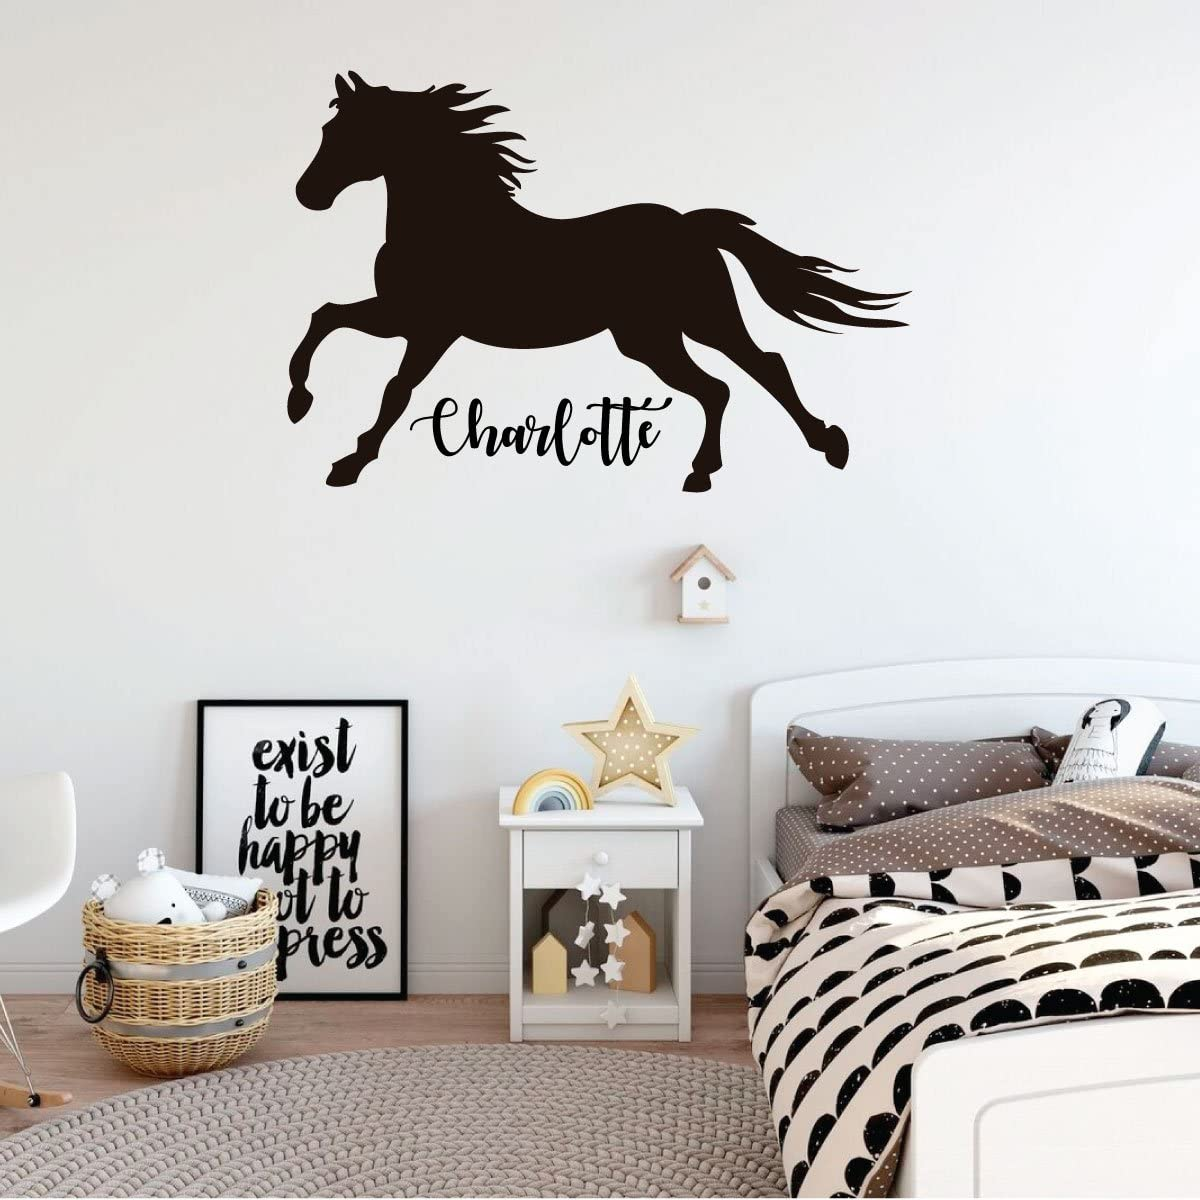 Room Wall Decor - Horse with Customized Name Rustic Vinyl Decal Stickers for Home in Teens, Girls, Boys Bedroom, Bathroom, Playroom, or Nursery - Custom Sizes and Colors Match Any Themed Living Space